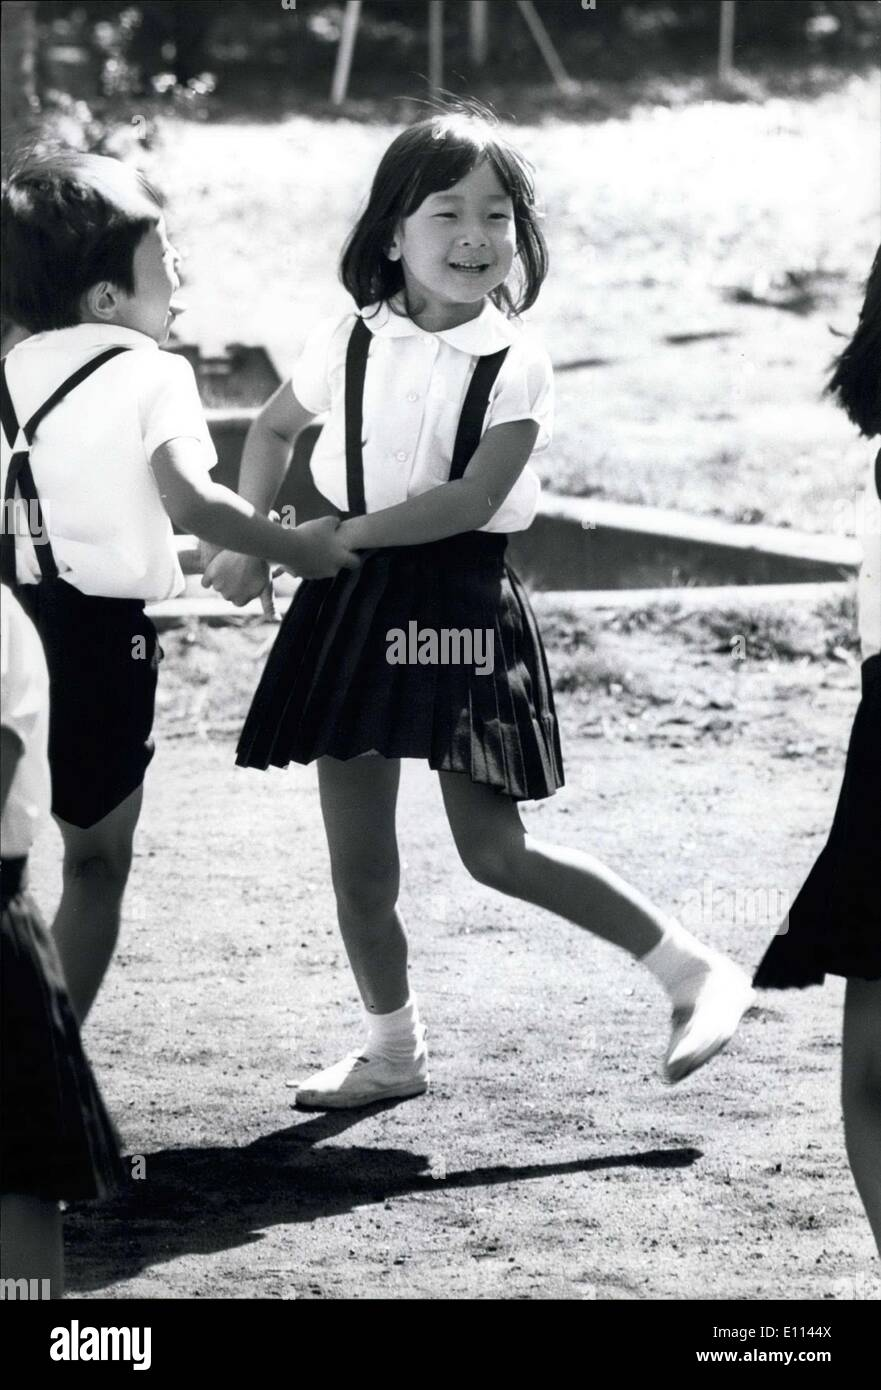 Oct. 17, 1975 - Dancing Princ Princess Nori, age 10, the only daughter of the Crown Prince and Princess of Japan, seems to m - Stock Image